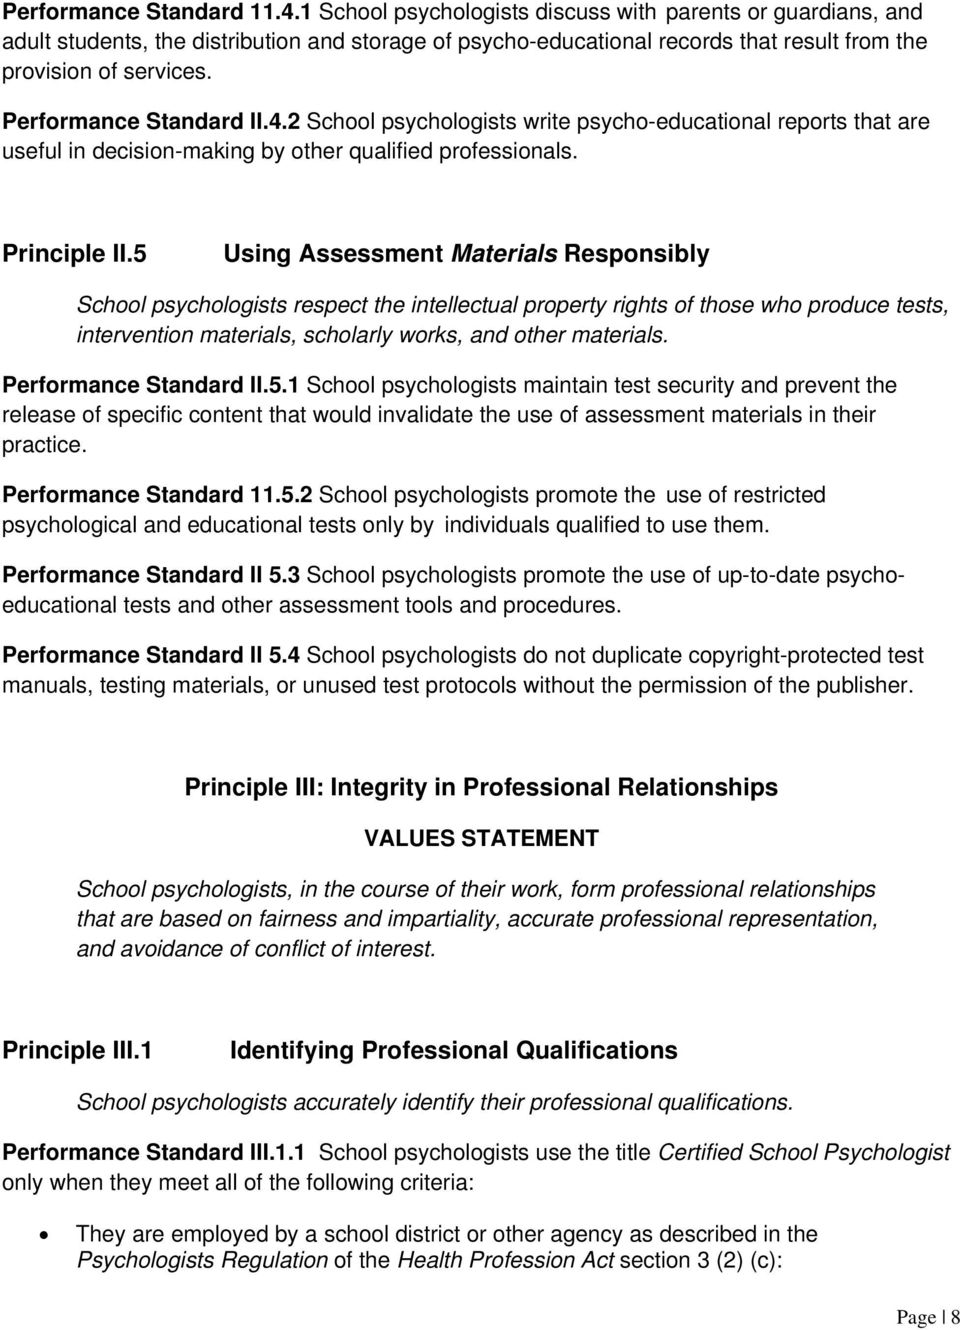 Performance Standard II.4.2 School psychologists write psycho-educational reports that are useful in decision-making by other qualified professionals. Principle II.